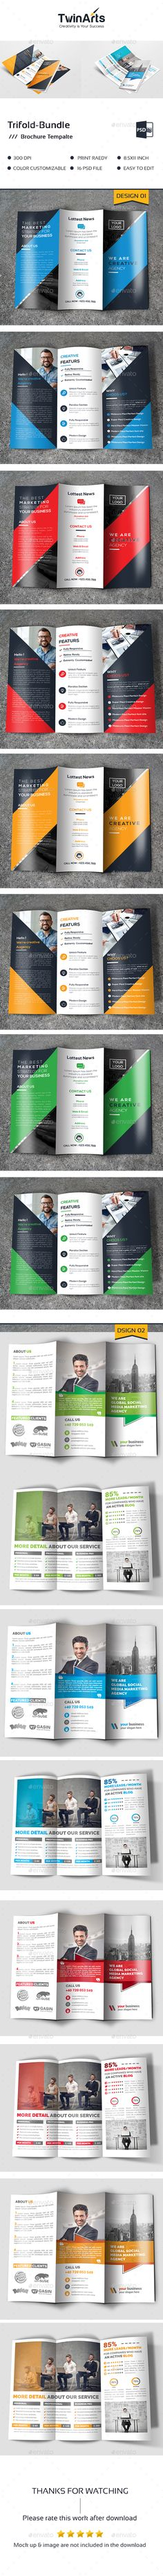 Tri-fold in 1 - Brochures Print Templates Indesign Brochure Templates, Travel Brochure Template, Bi Fold Brochure, Business Brochure, Brochure Design, Booklet Design, Pose, Corporate, Print Templates